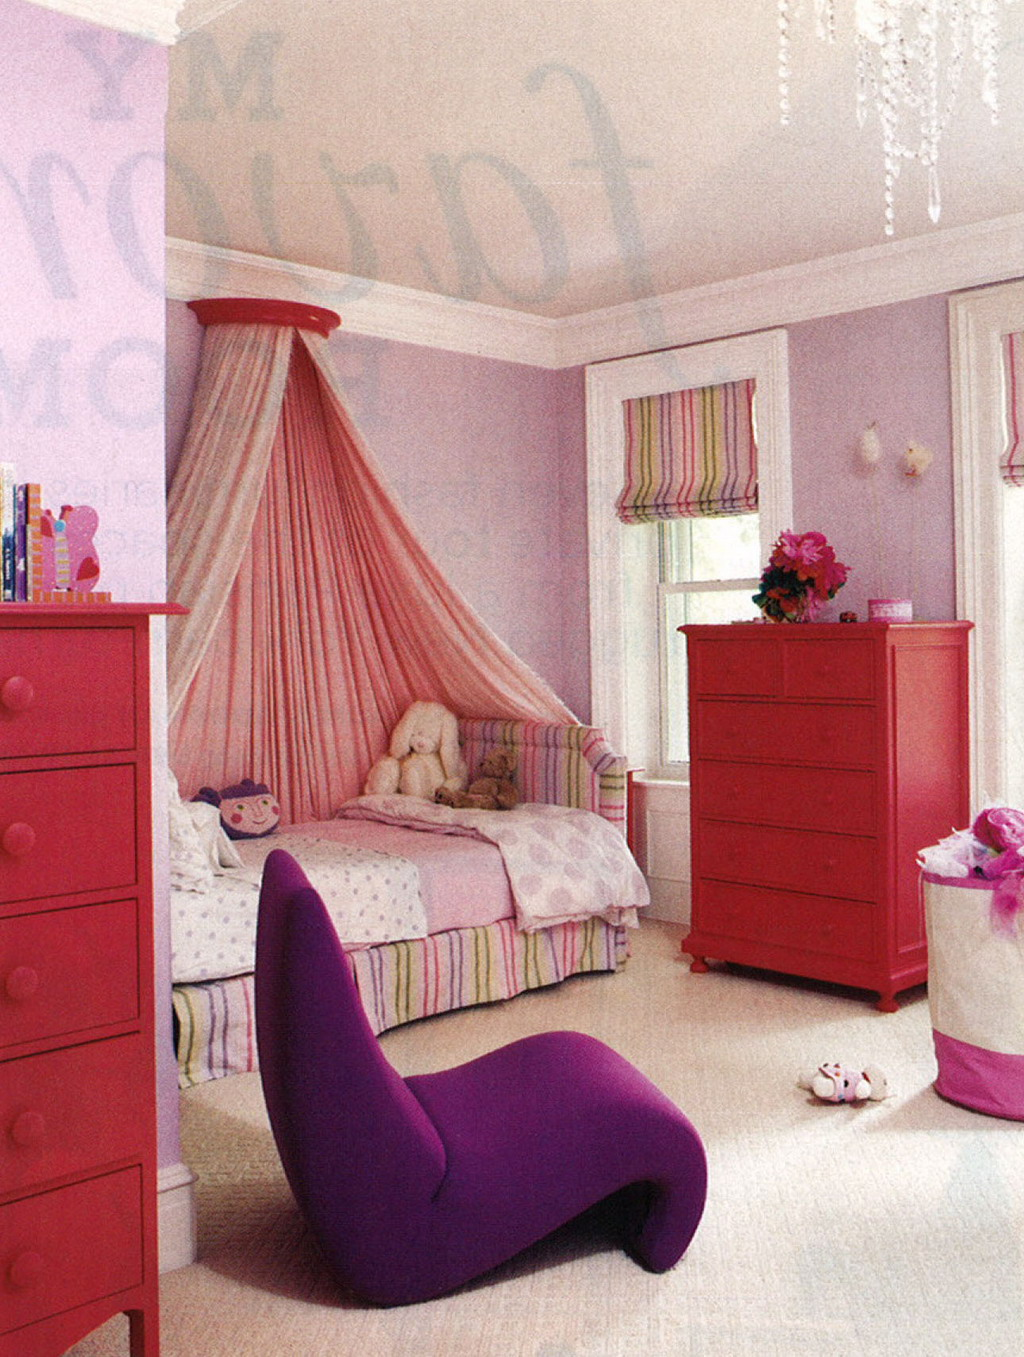 Girls chairs for bedroom decor ideasdecor ideas - Bedroom furniture for small rooms ...